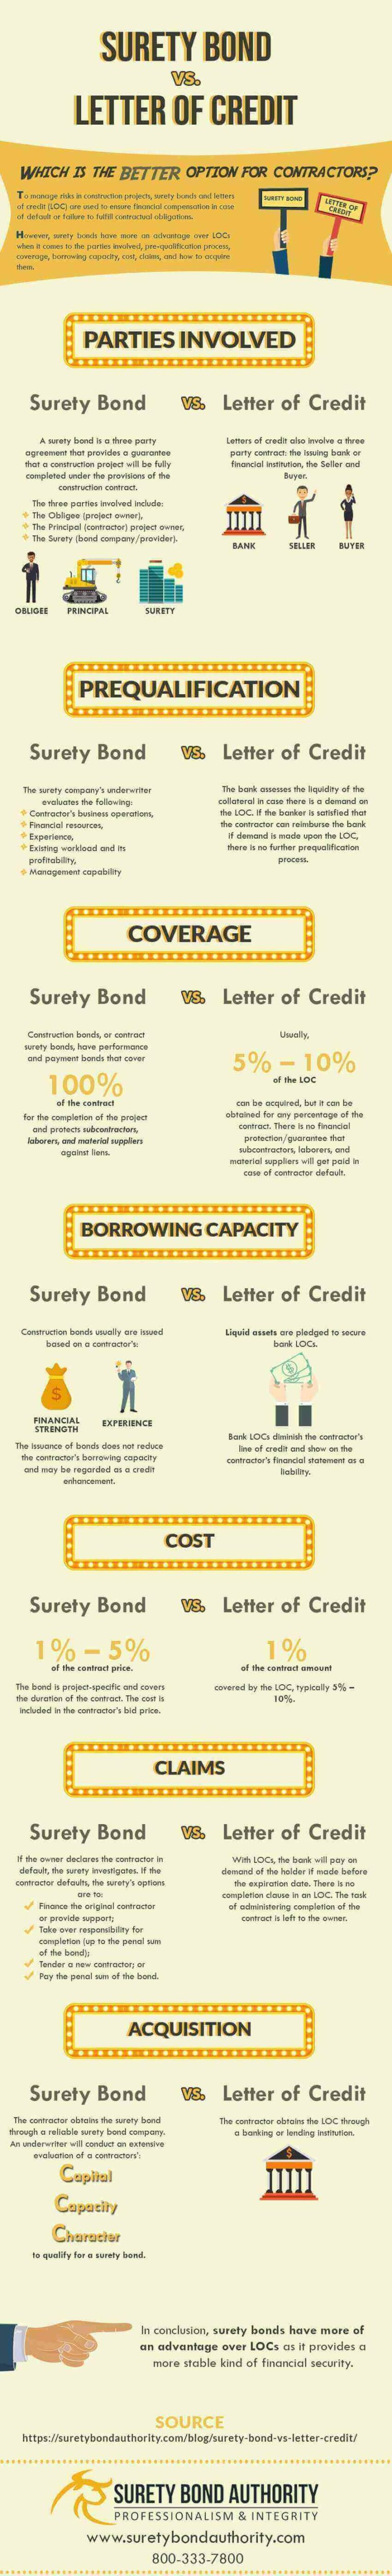 Surety Bond vs LOC Infographic